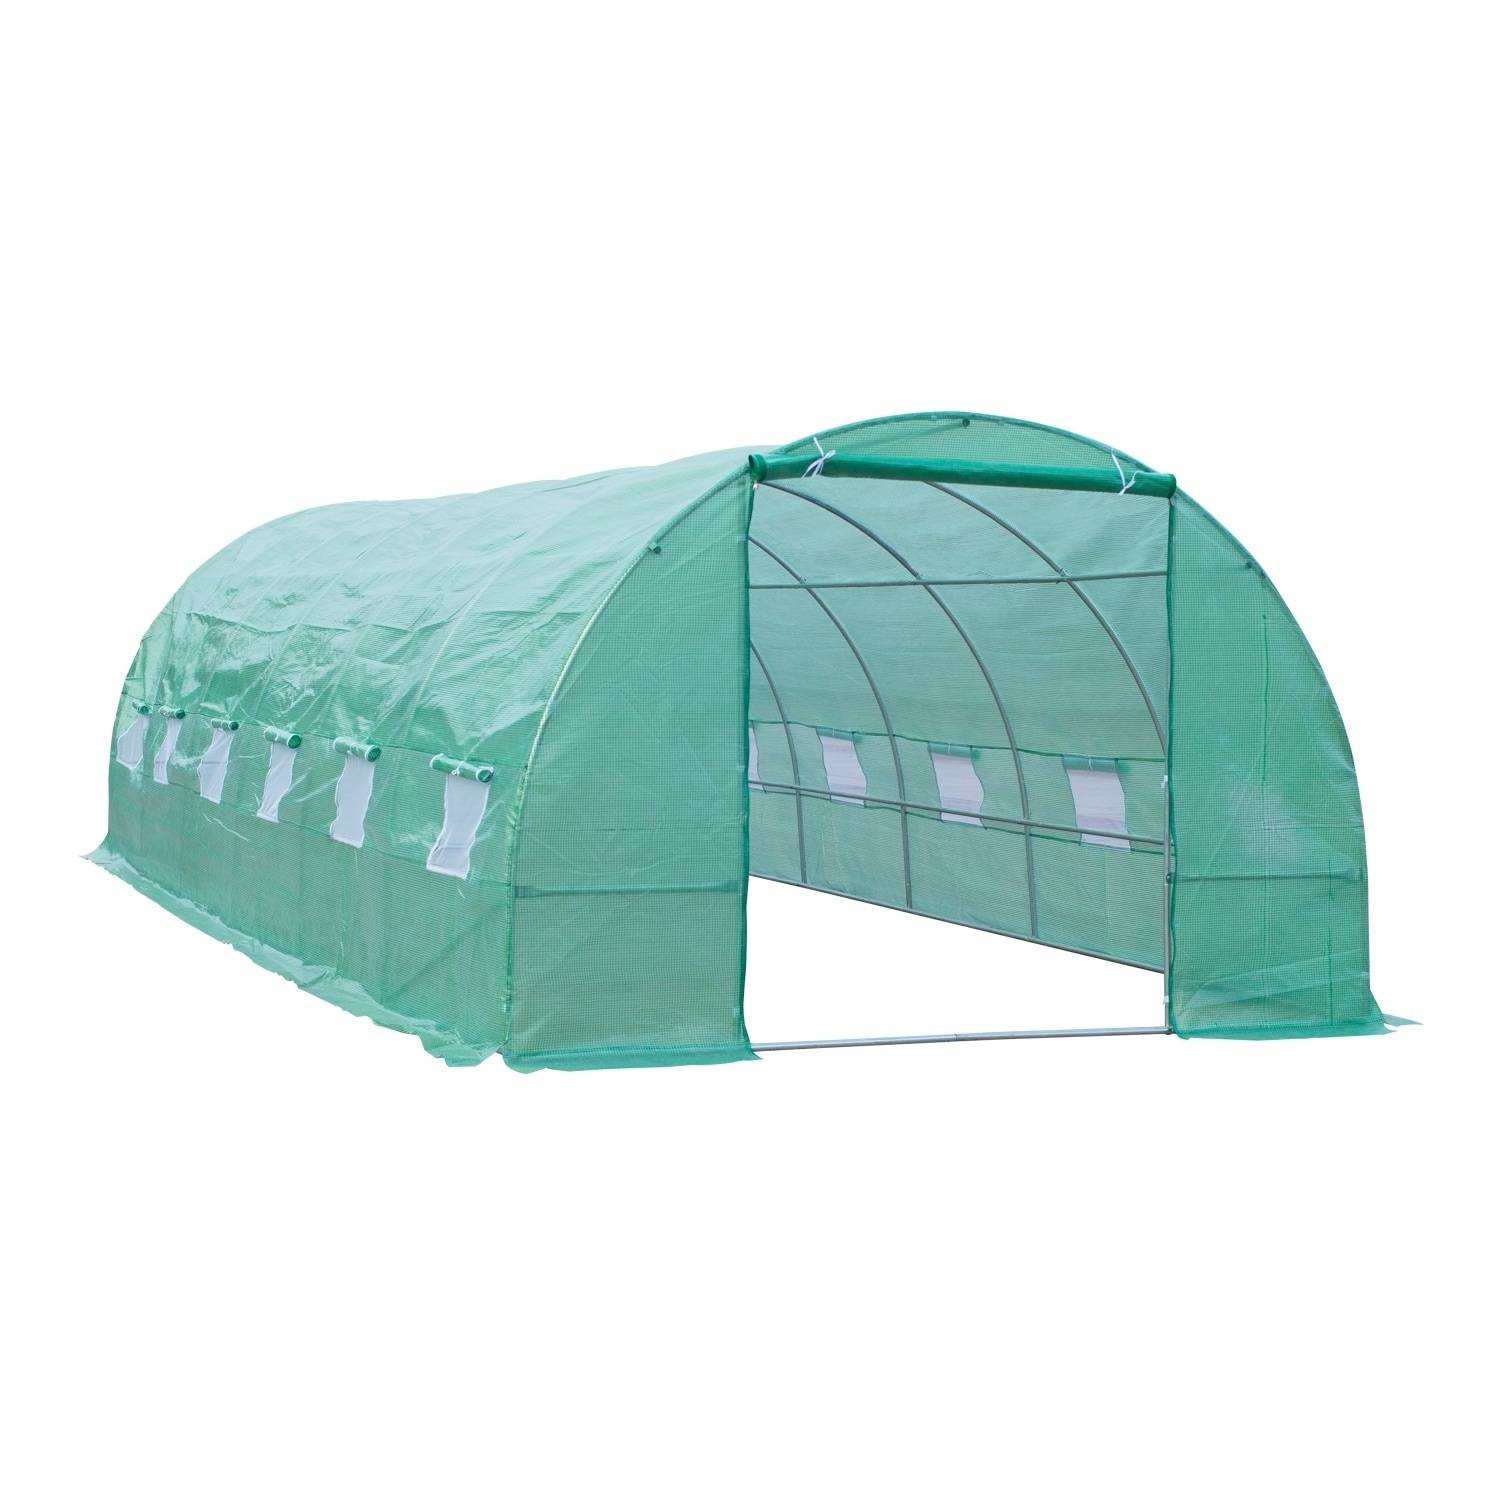 Shop Outsunny 26 ft x 10 ft x 7 ft Portable Walk-In Garden ...